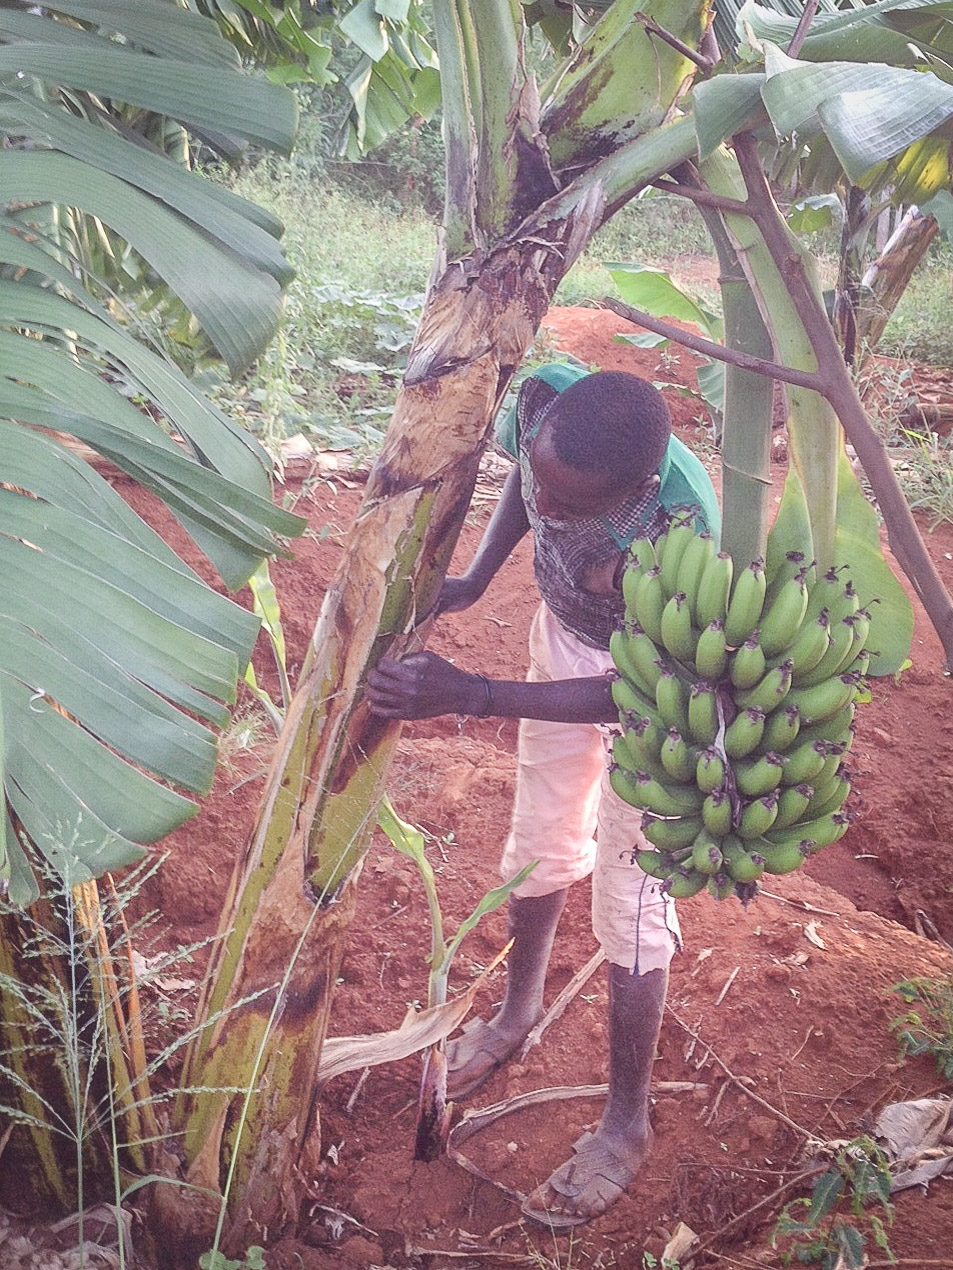 Our banana trees requires constant care. This is one of our youths reinforcing the tree to keep it upright.